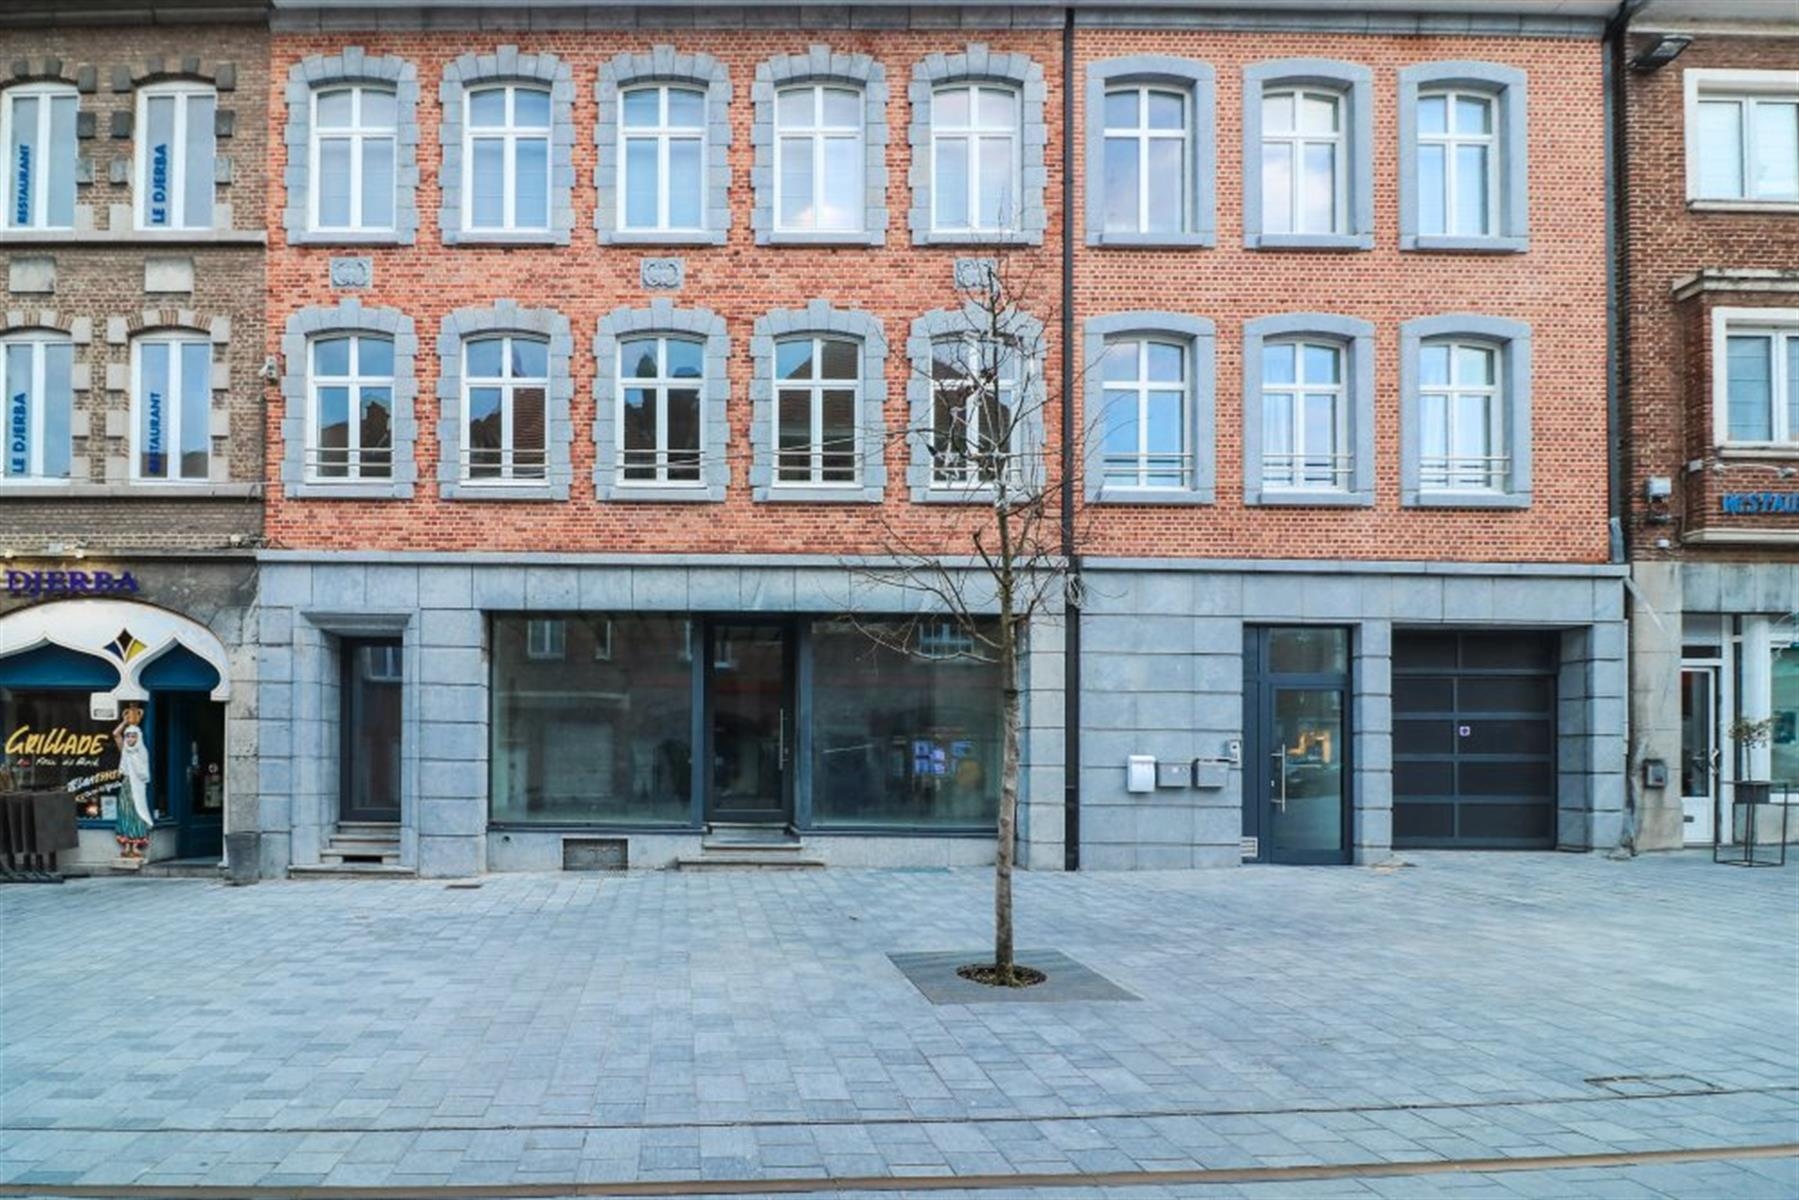 Surface commerciale - 151m²